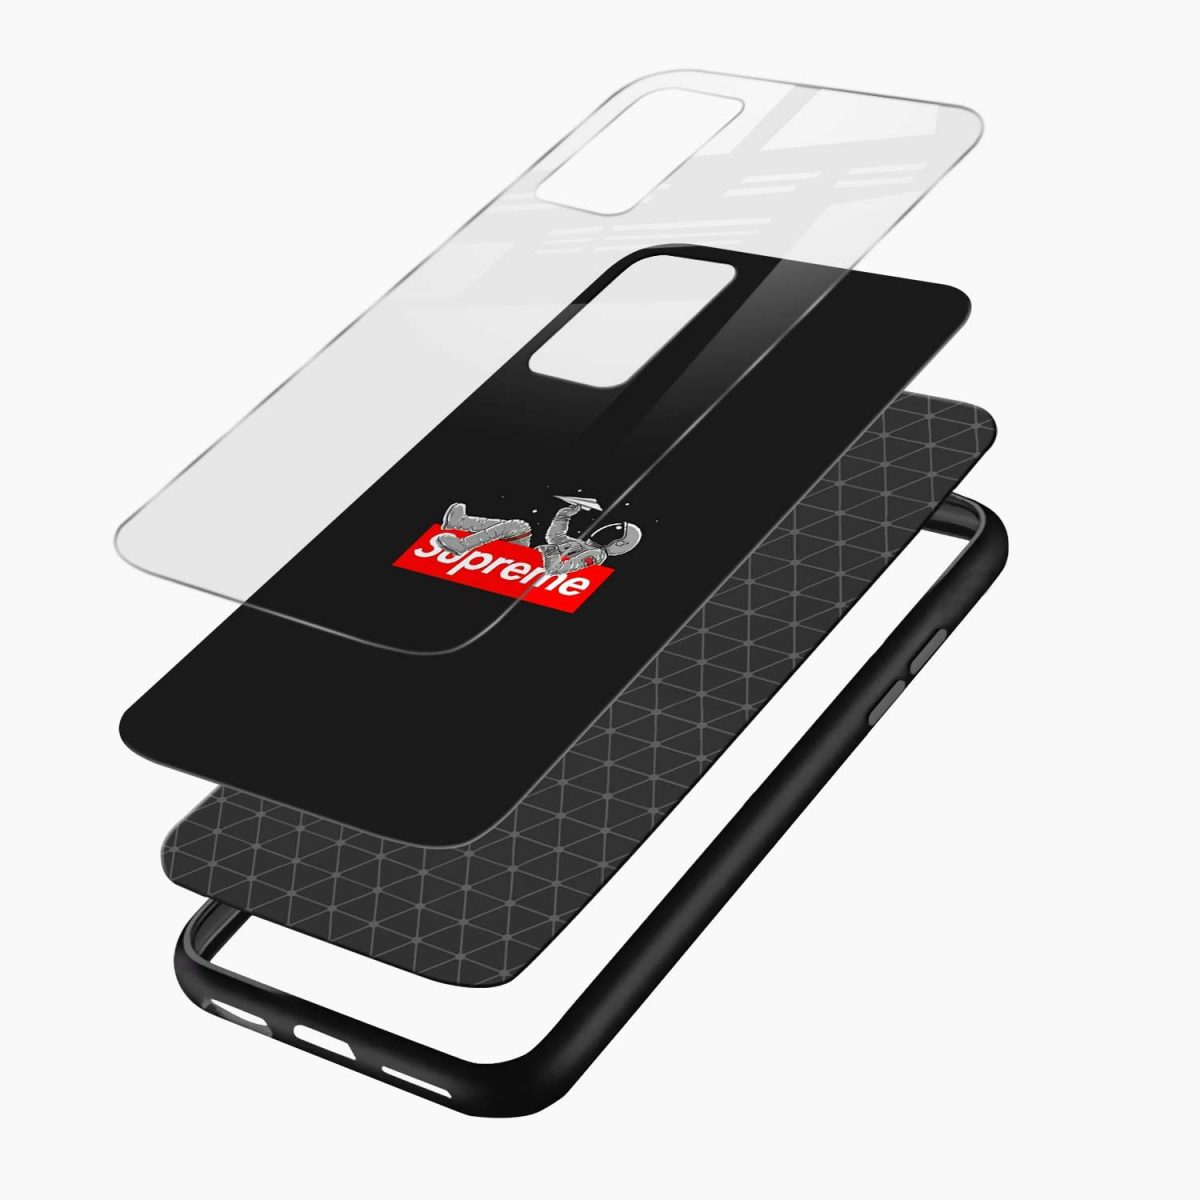 supreme astronaut layers view samsung galaxy note20 ultra back cover